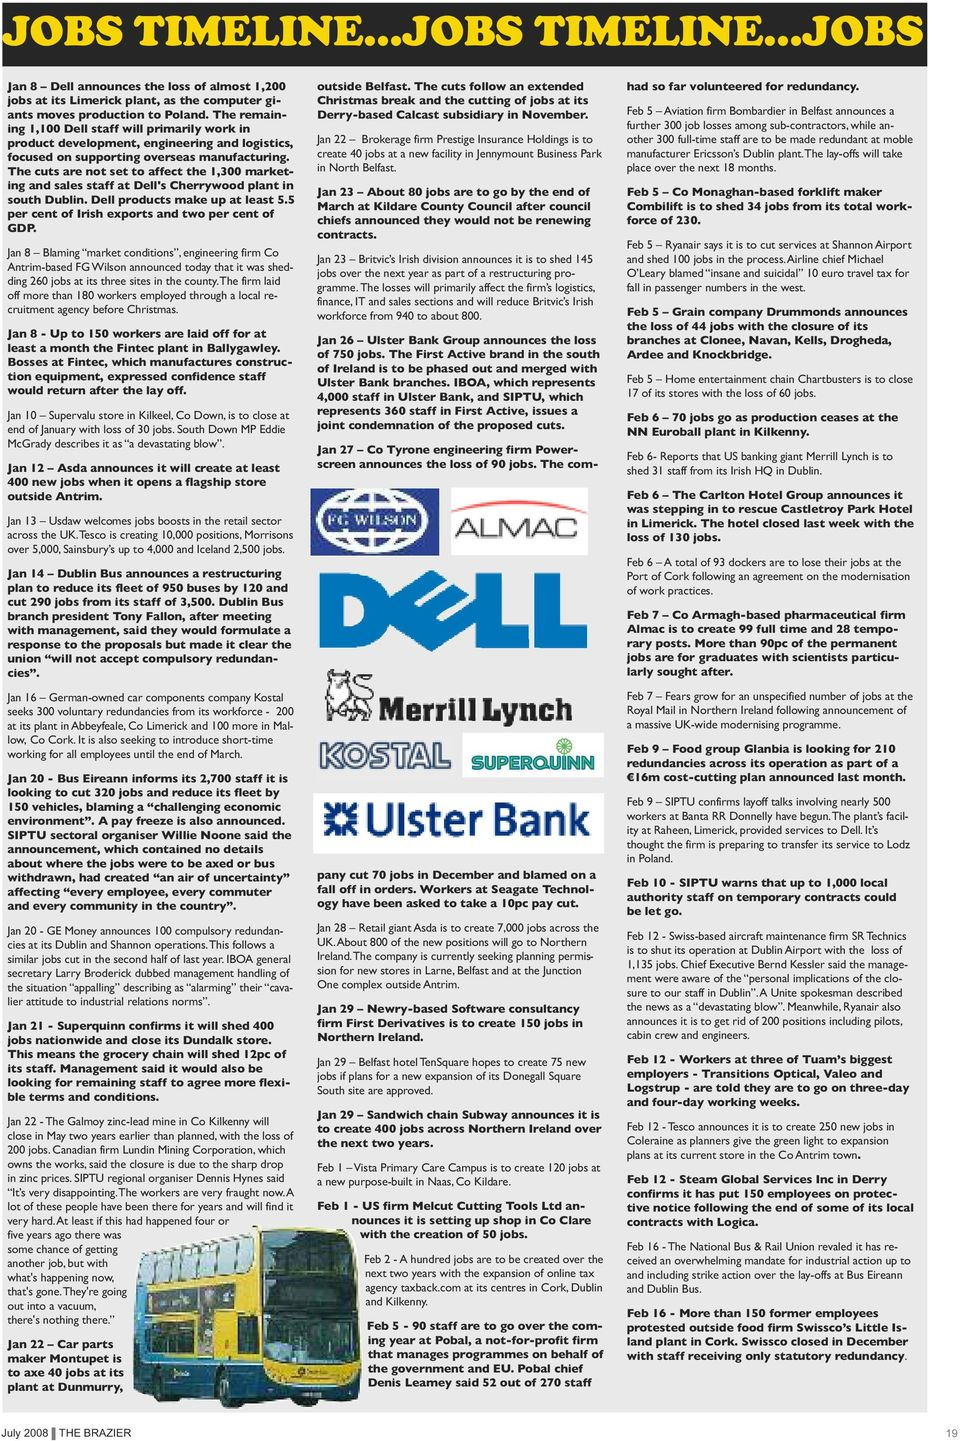 The cuts are not set to affect the 1,300 marketing and sales staff at Dell's Cherrywood plant in south Dublin. Dell products make up at least 5.5 per cent of Irish exports and two per cent of GDP.